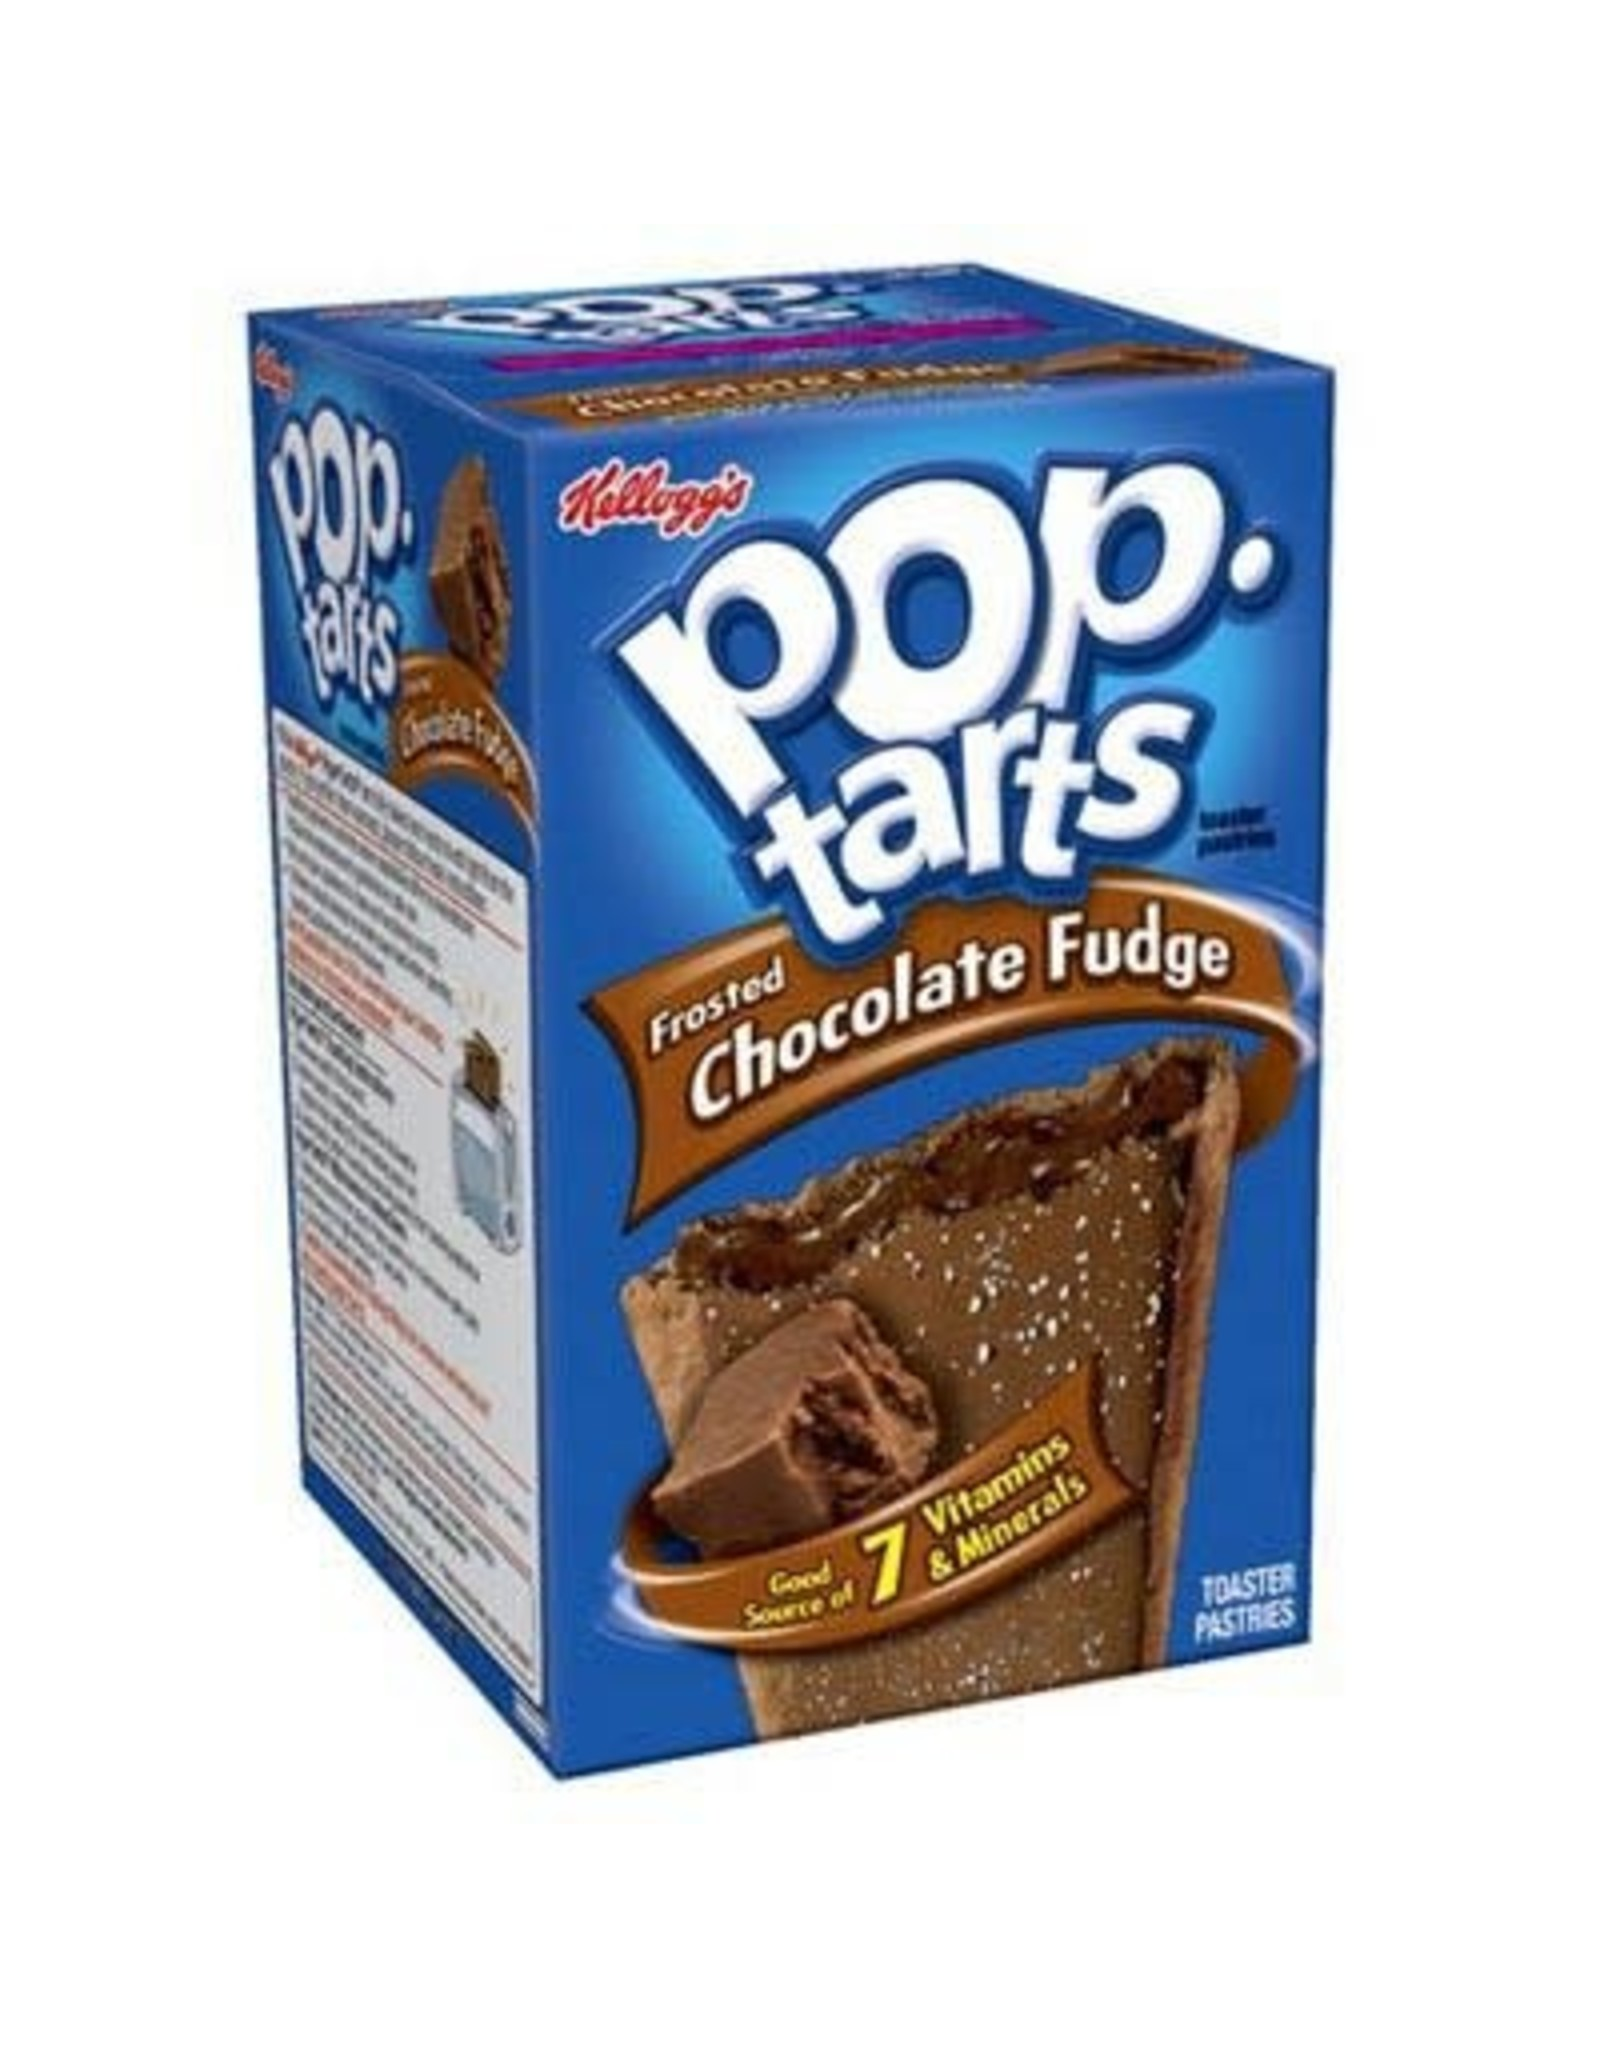 Pop-Tarts Frosted Chocolate Fudge - 8 Pack